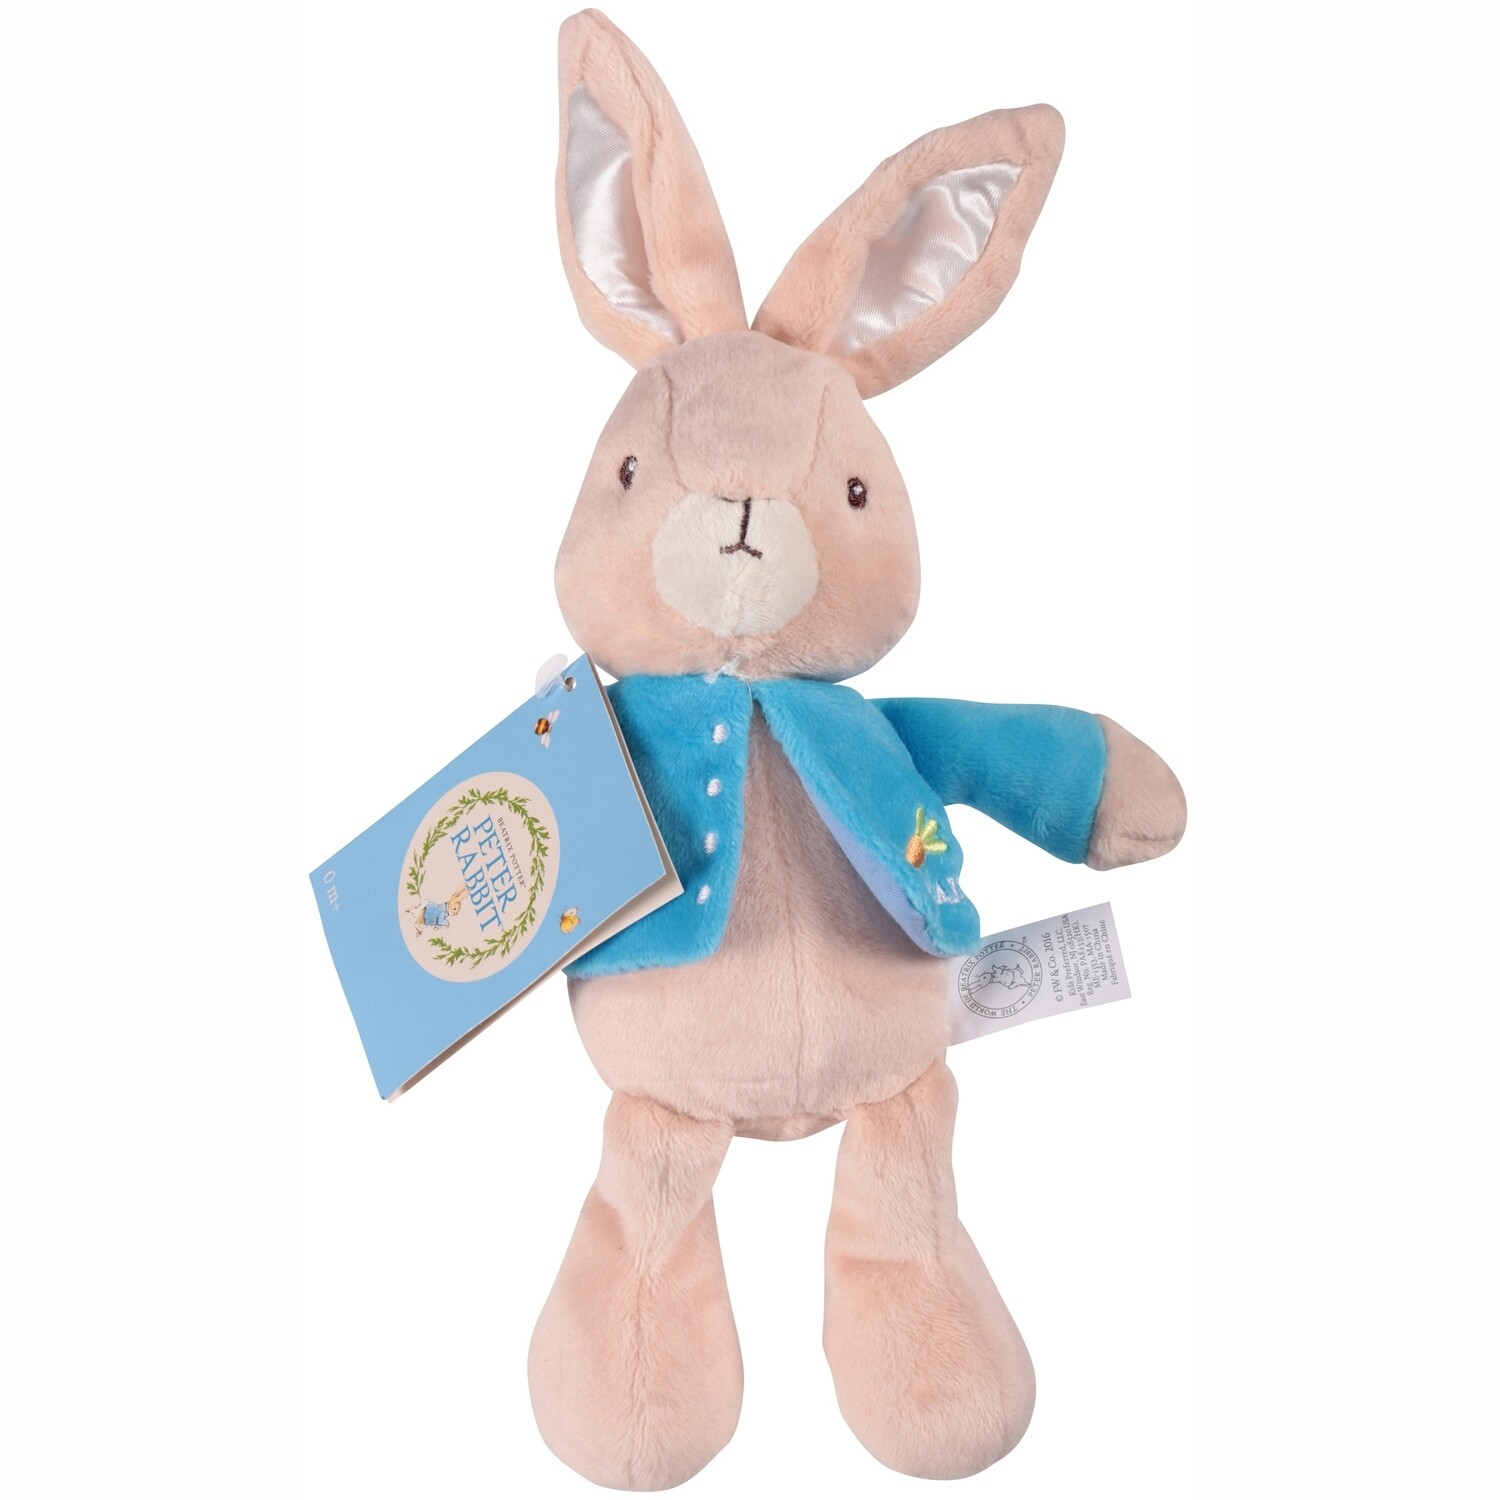 Peter Rabbit Plush Toy (Big)